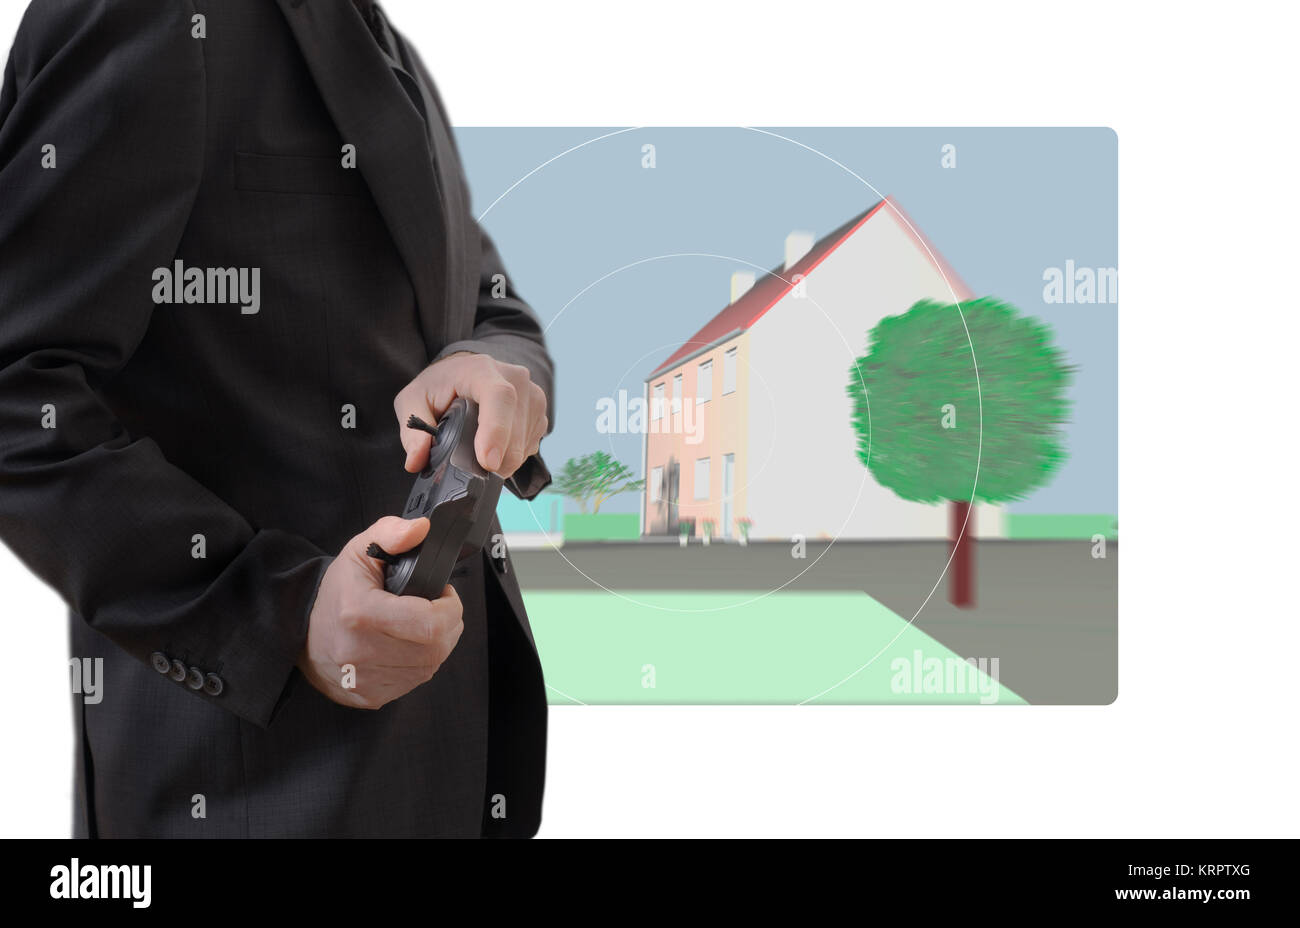 Networked Home Stock Photos & Networked Home Stock Images - Alamy